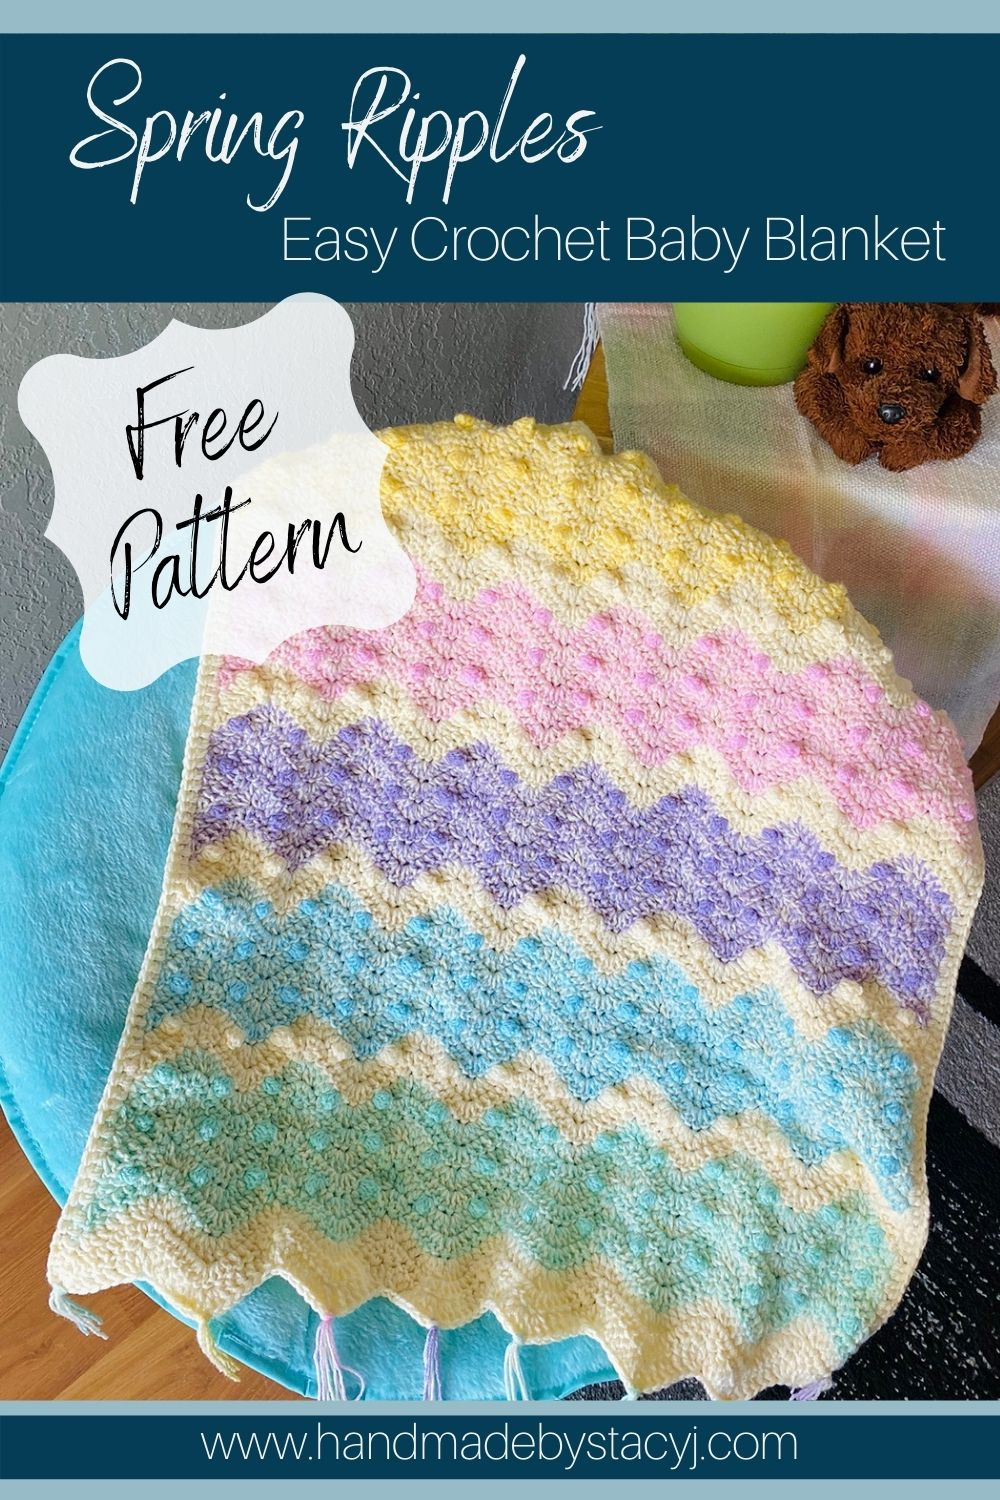 Image of Spring Ripples Crochet Baby Blanket by Handmade by Stacy J